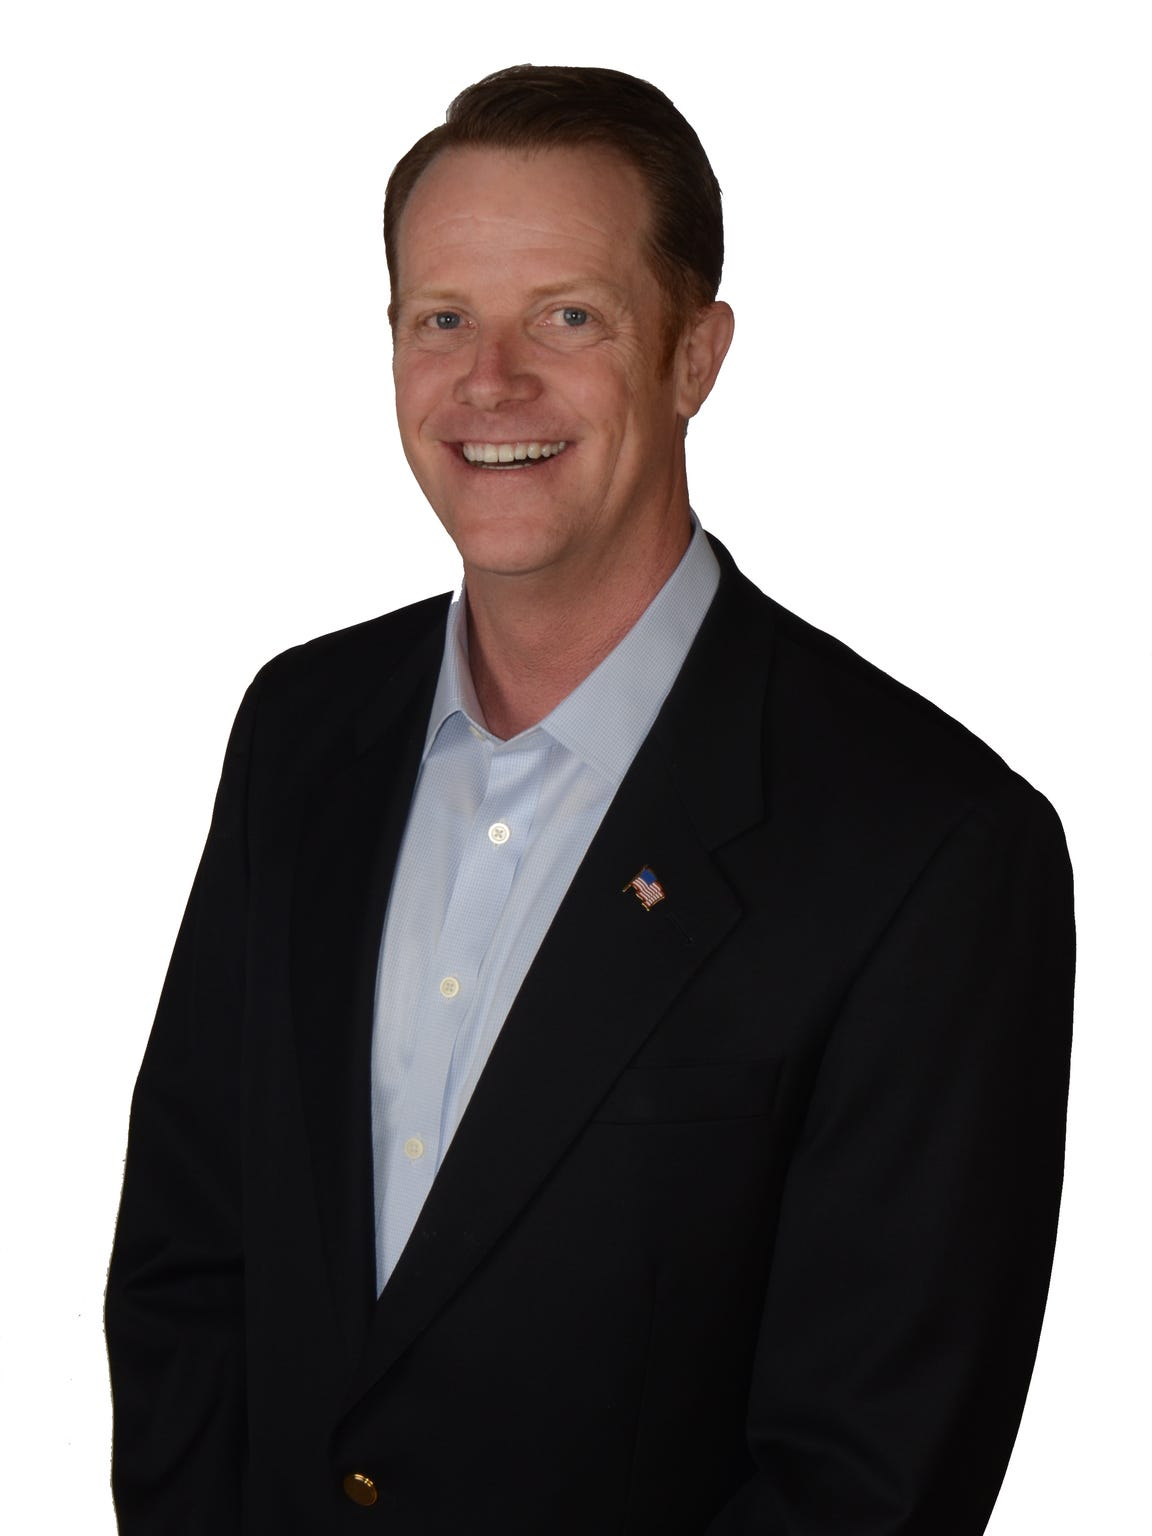 Kent Bailey, Republican candidate for Senate District